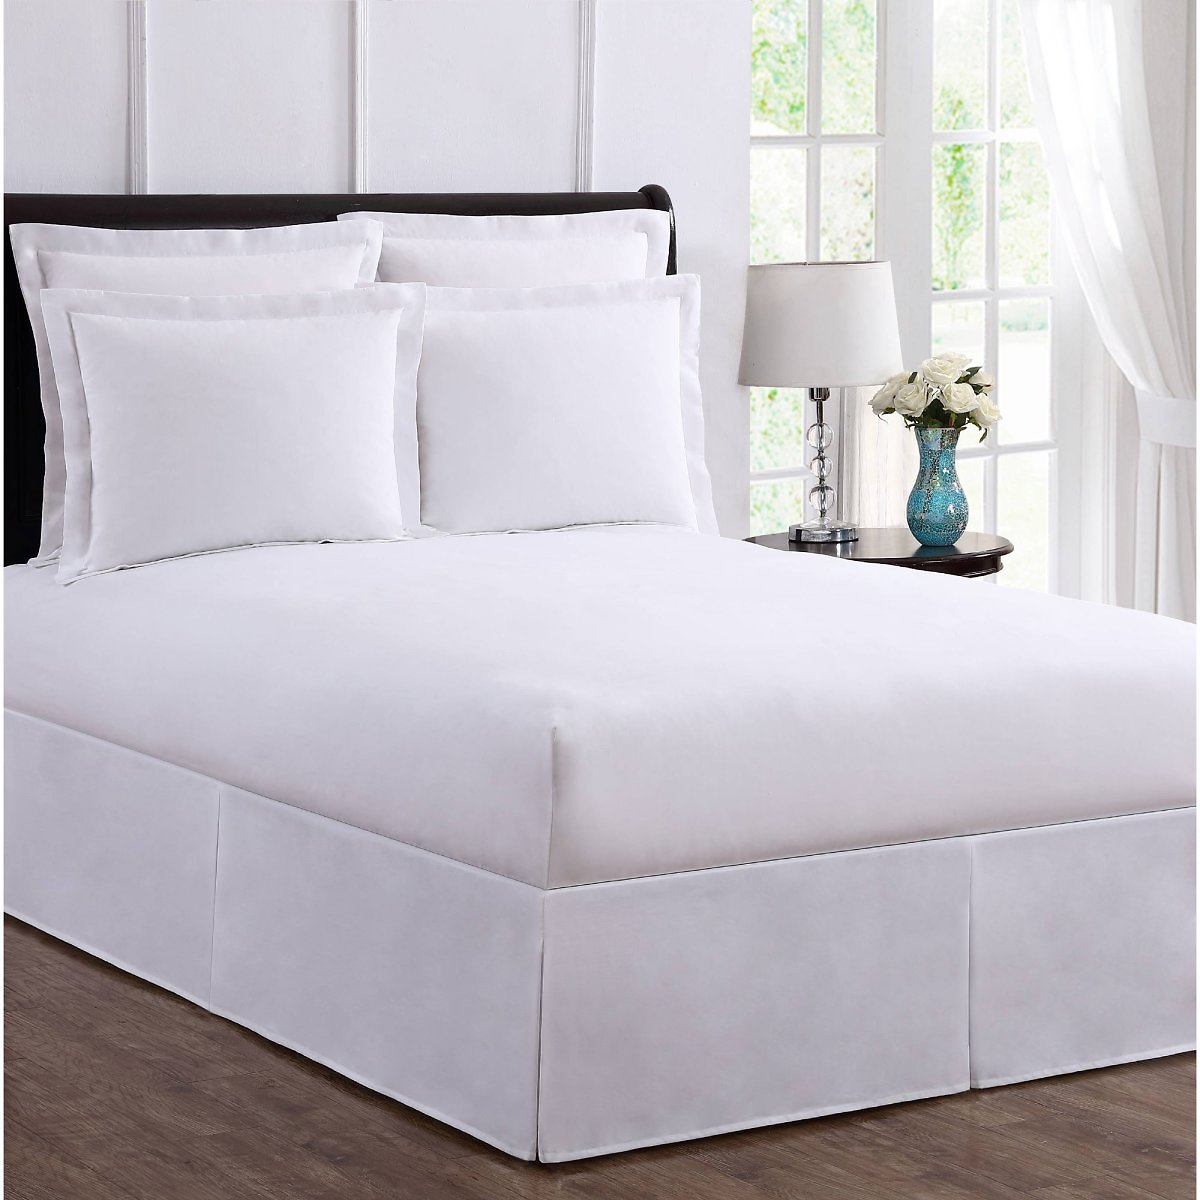 Levinsohn Bed Maker's Wrap-Around Tailored Bedding Bed Skirt